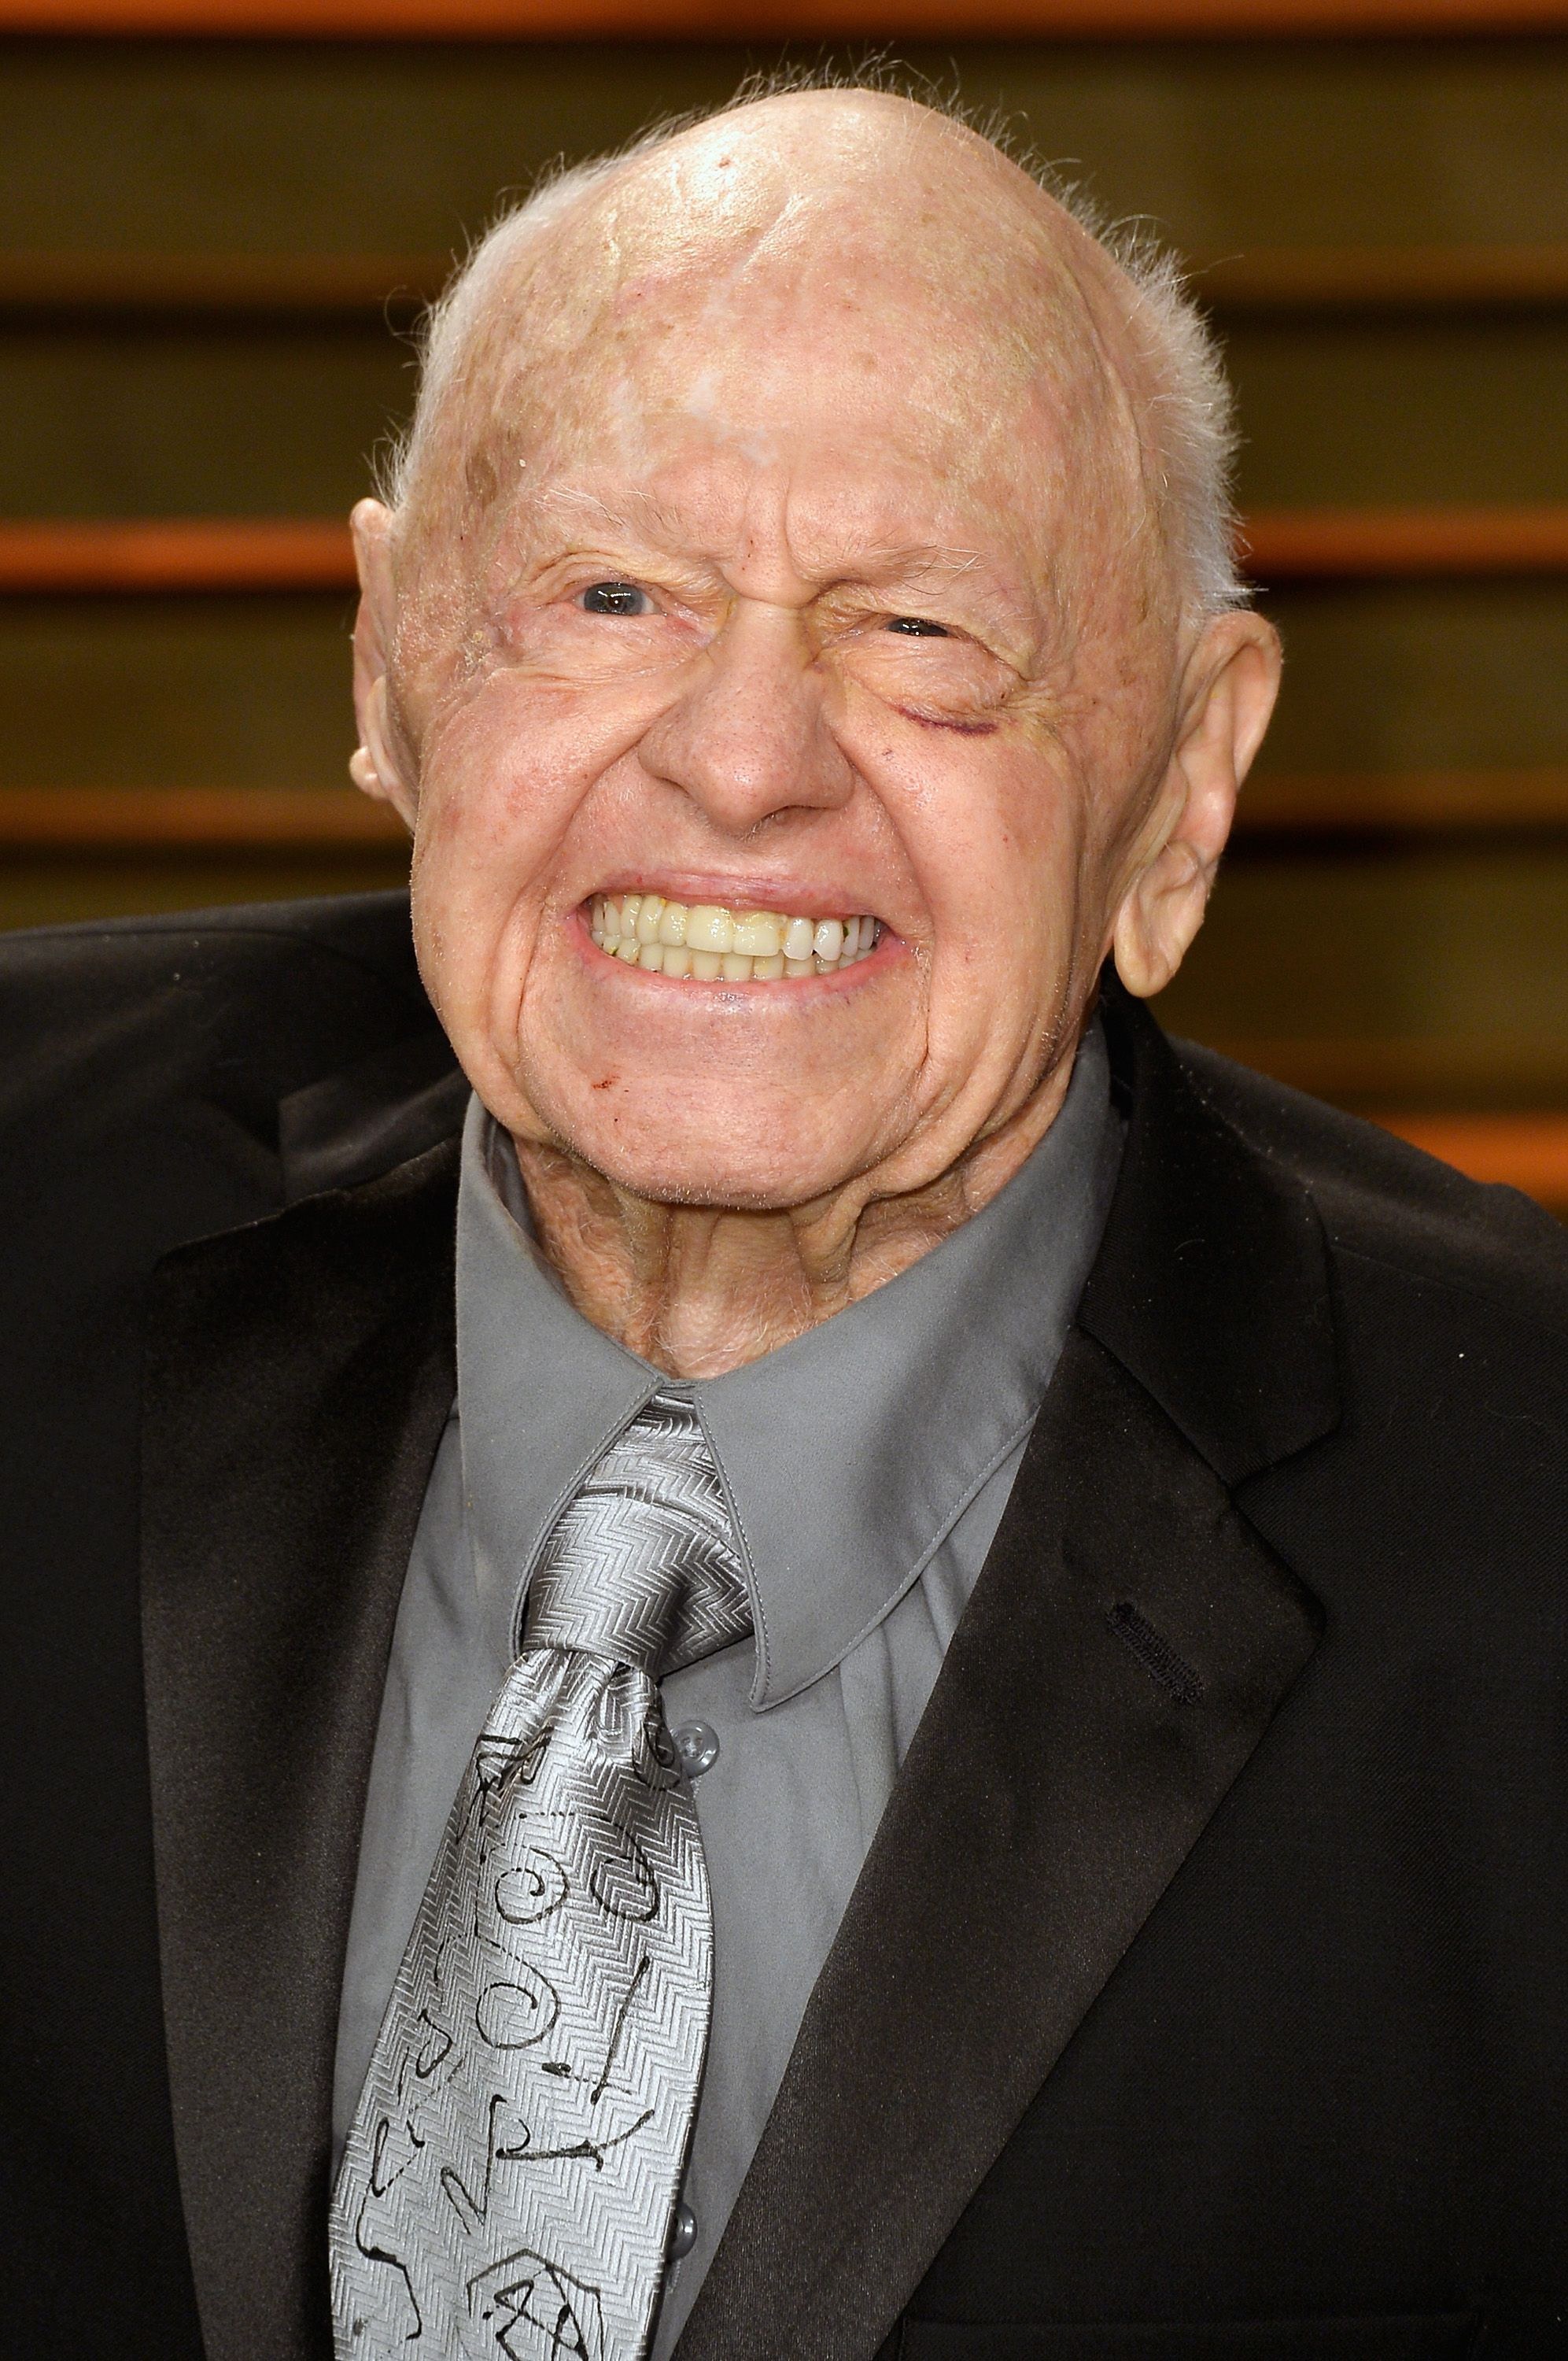 Mickey Rooney at the Vanity Fair Oscar Party hosted by Graydon Carter on March 2, 2014, in West Hollywood, California | Photo: Getty Images